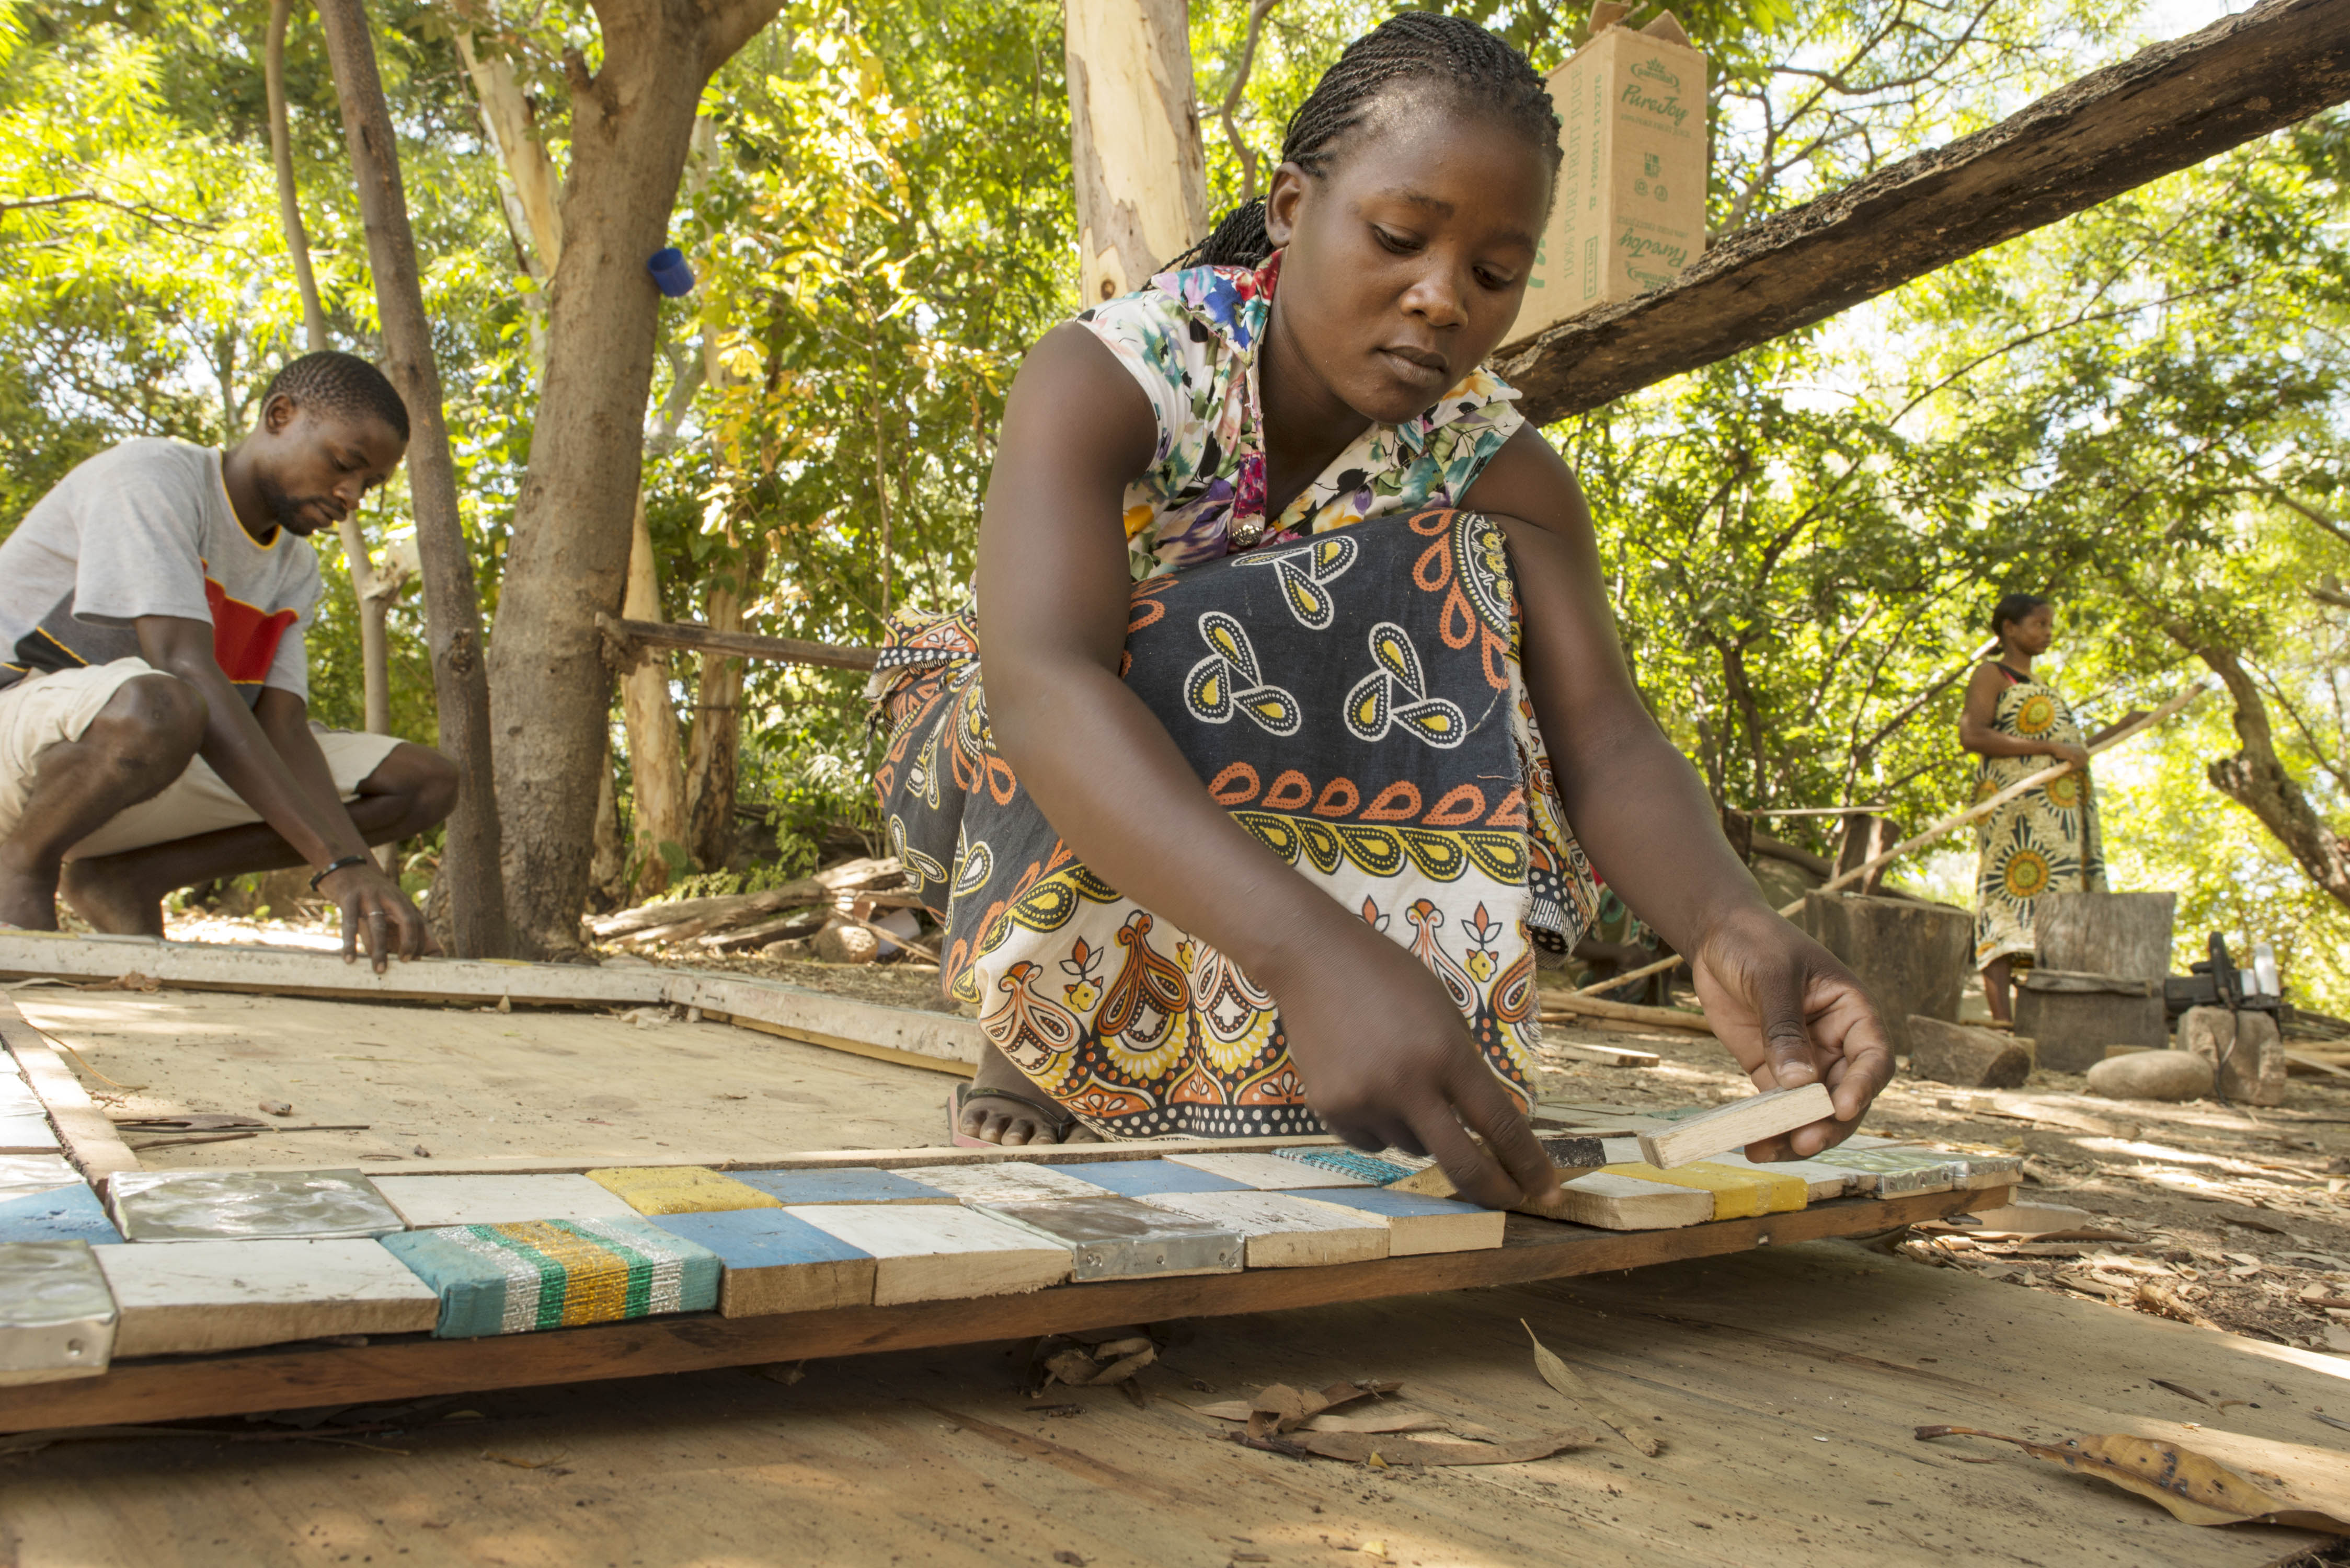 women empowerment carpentry recycled boat wood